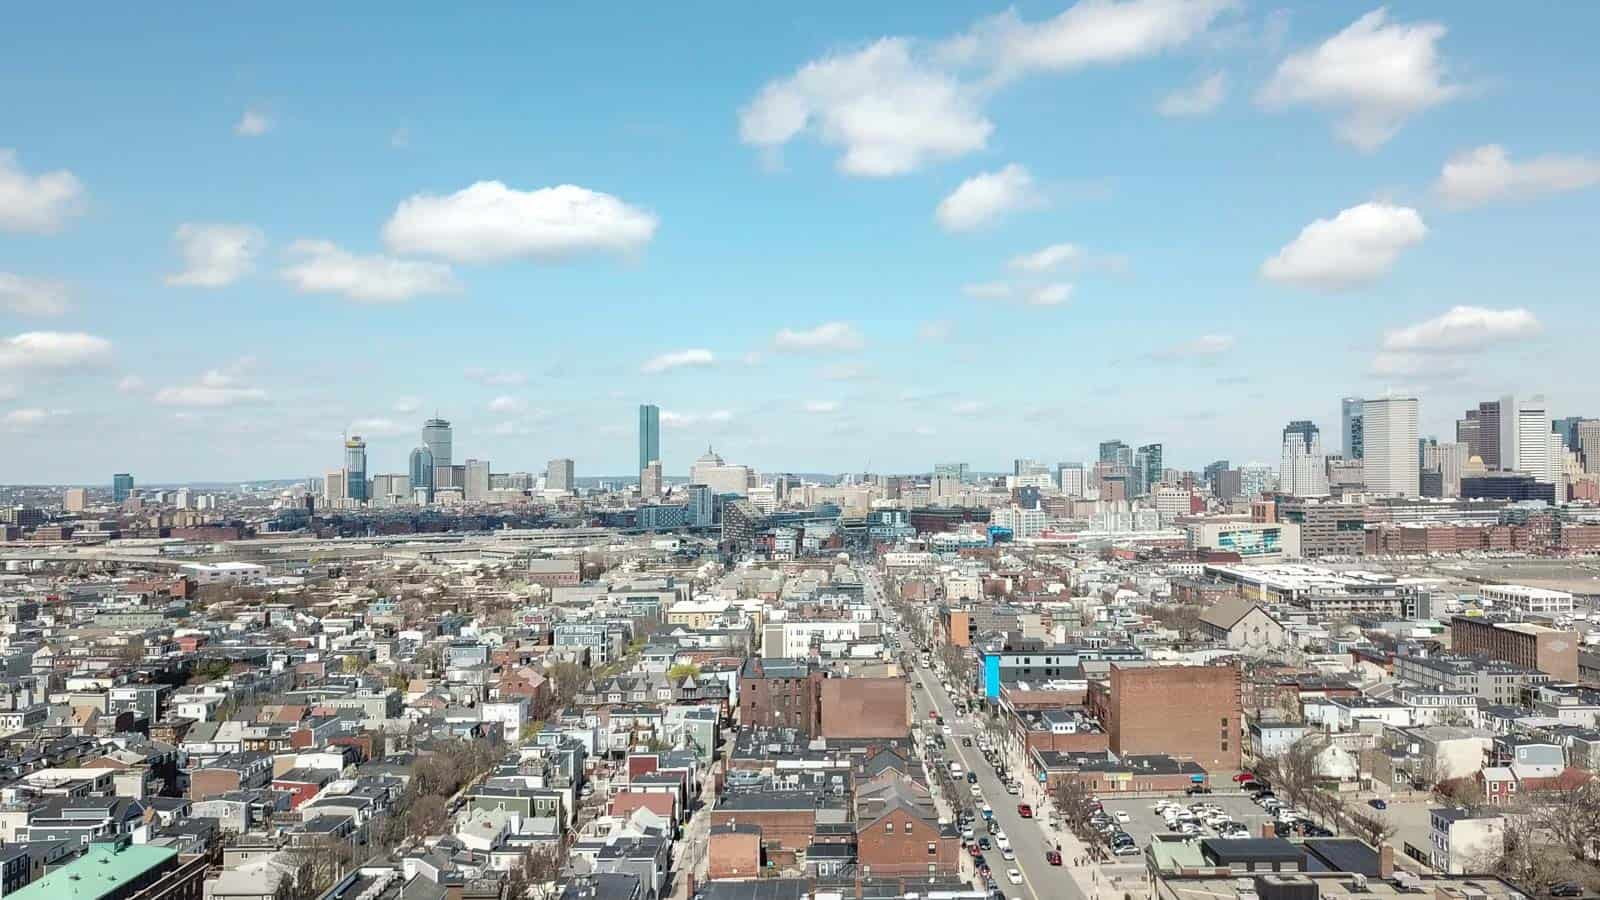 aerial drone photo of city of Boston